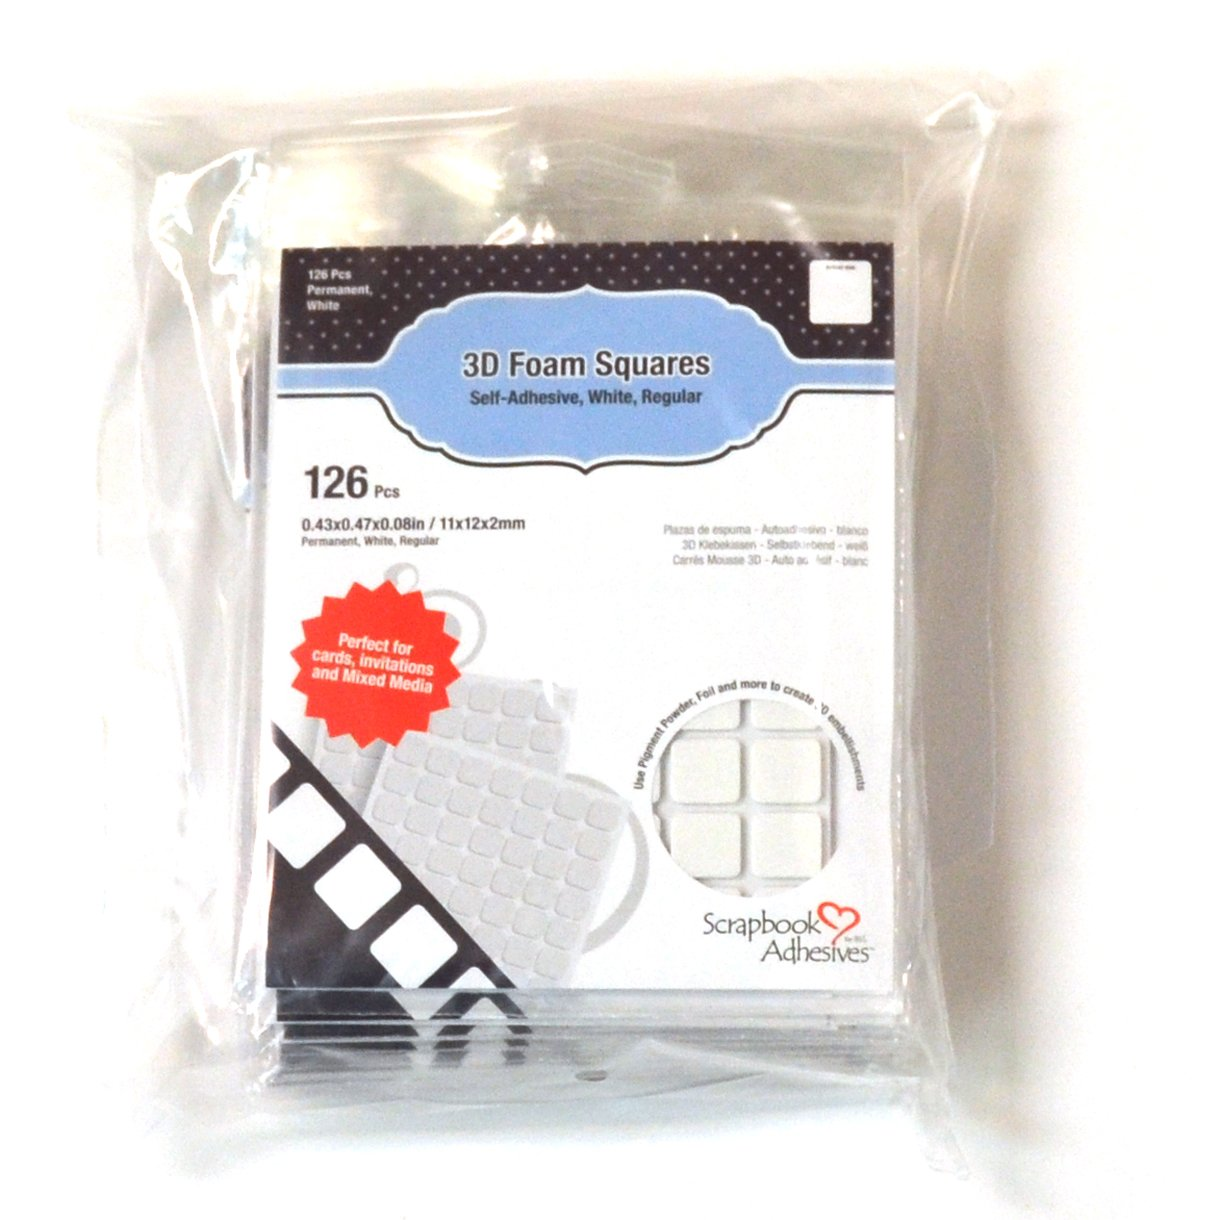 White-Set of 10 1//2 X 1//2, SCRAPBOOK ADHESIVES BY 3L 3L Scrapbook Adhesive Permanent Regular Pre-Cut 3D Foam Squares 126pk x 1//2-Inch